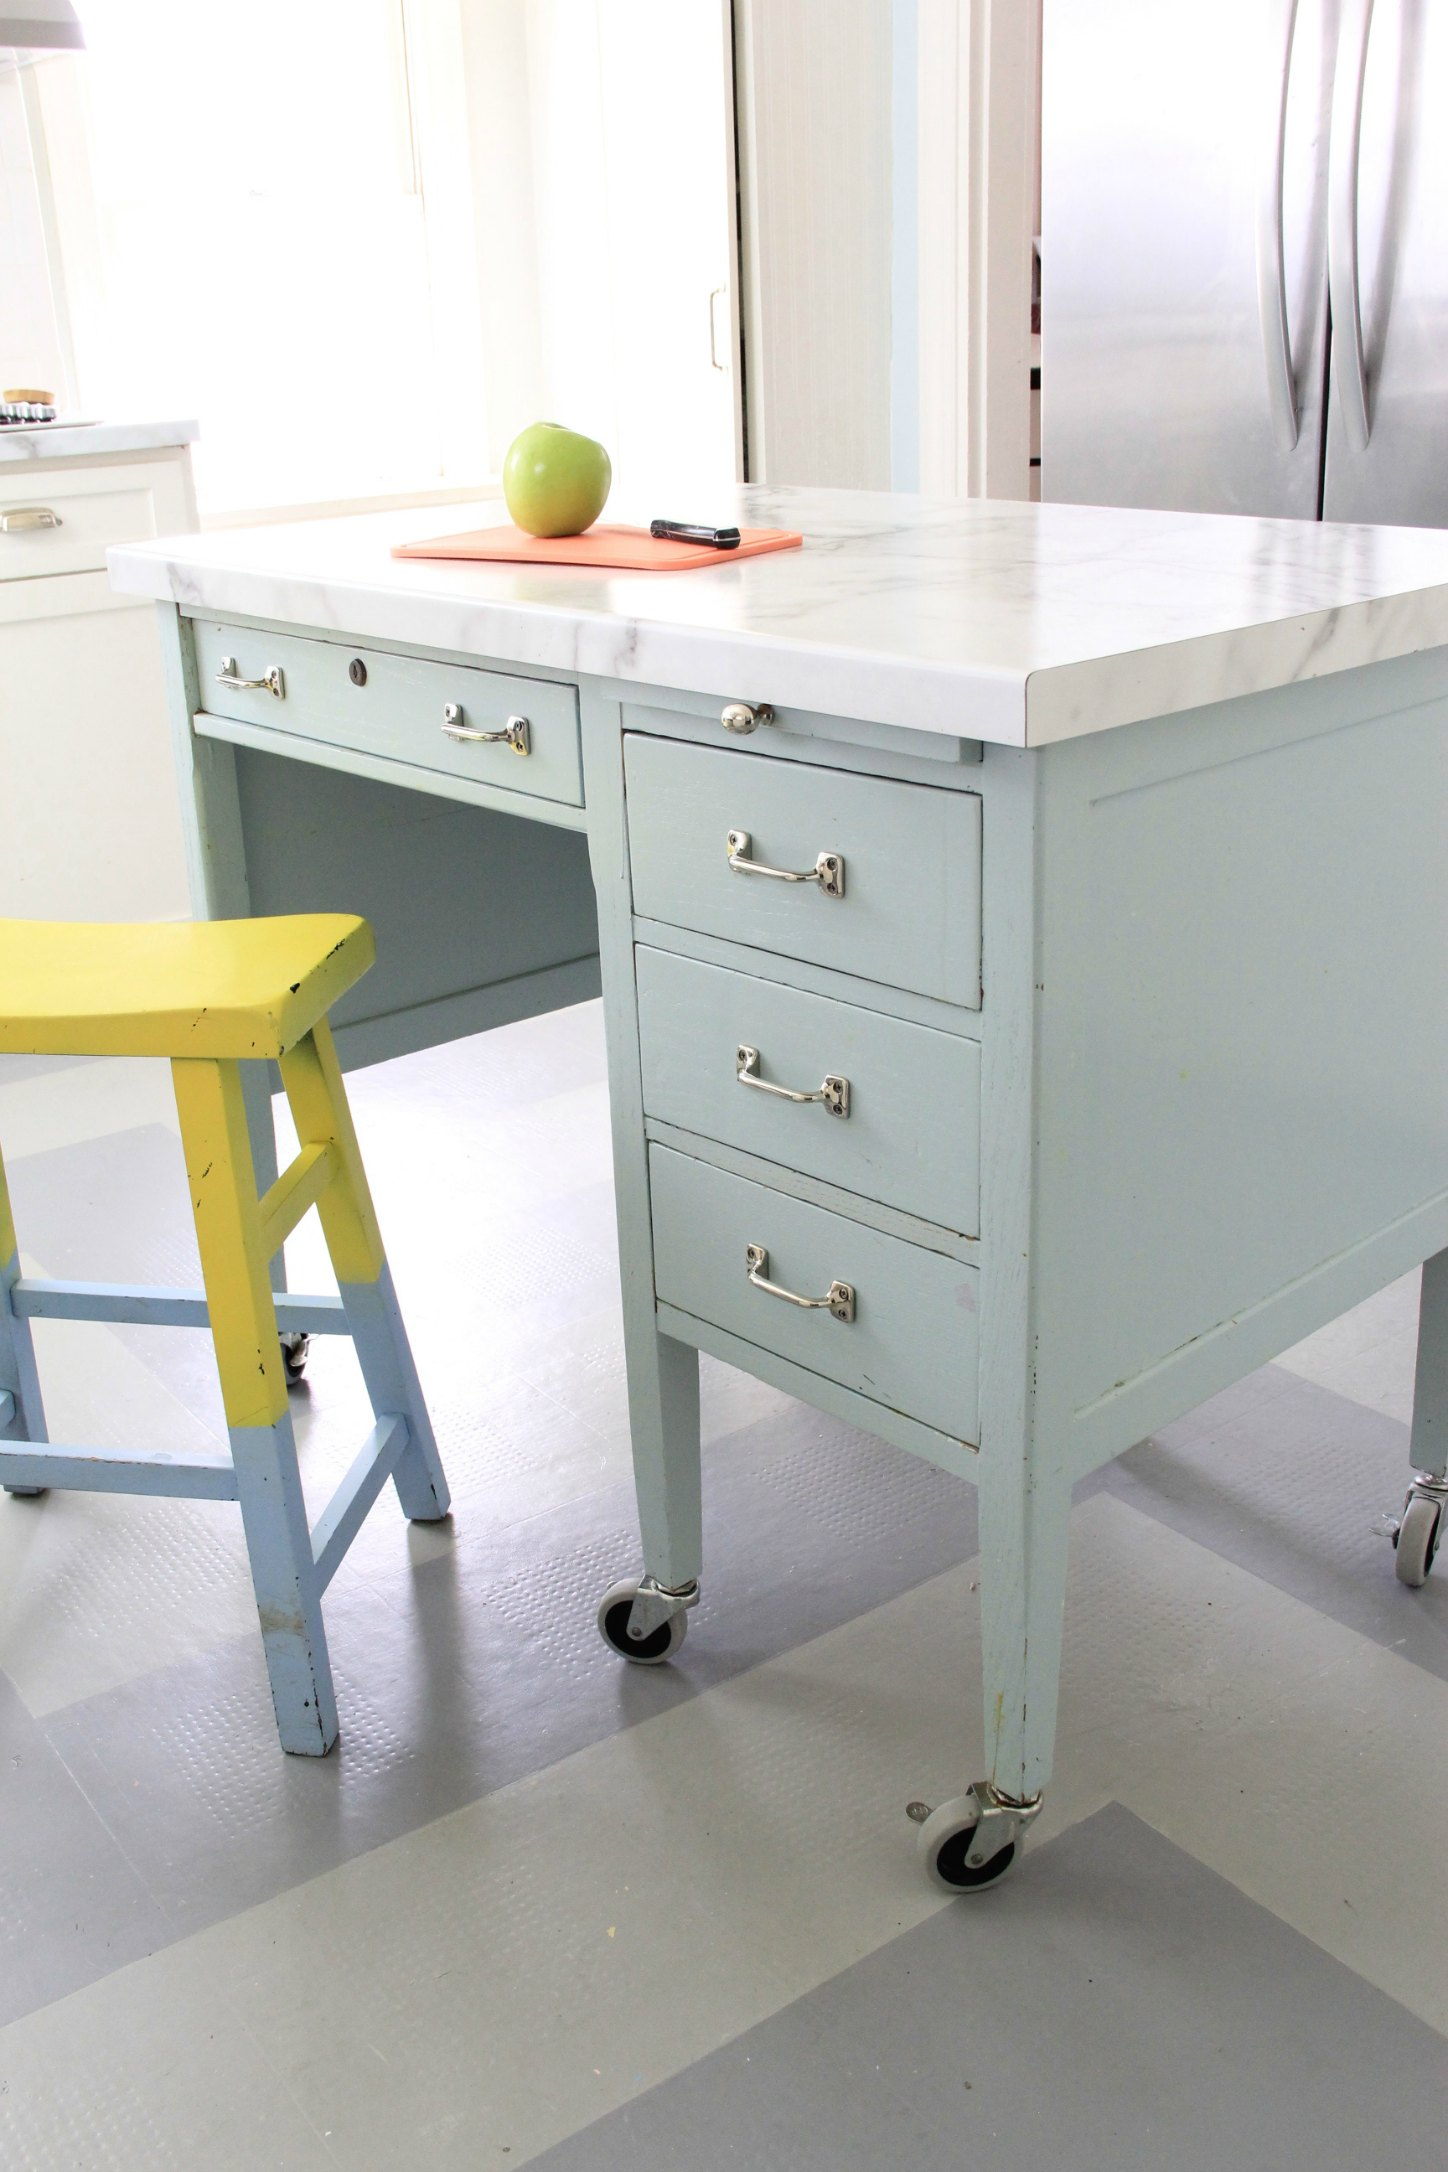 Beauteous Island Is Same Calacatta Marble Formica We Have On Our Kitchencounters Monday Makeover Diy Kitchen Island Kitchen Island Design Software Kitchen Island Desk Combo kitchen Kitchen Island Desk